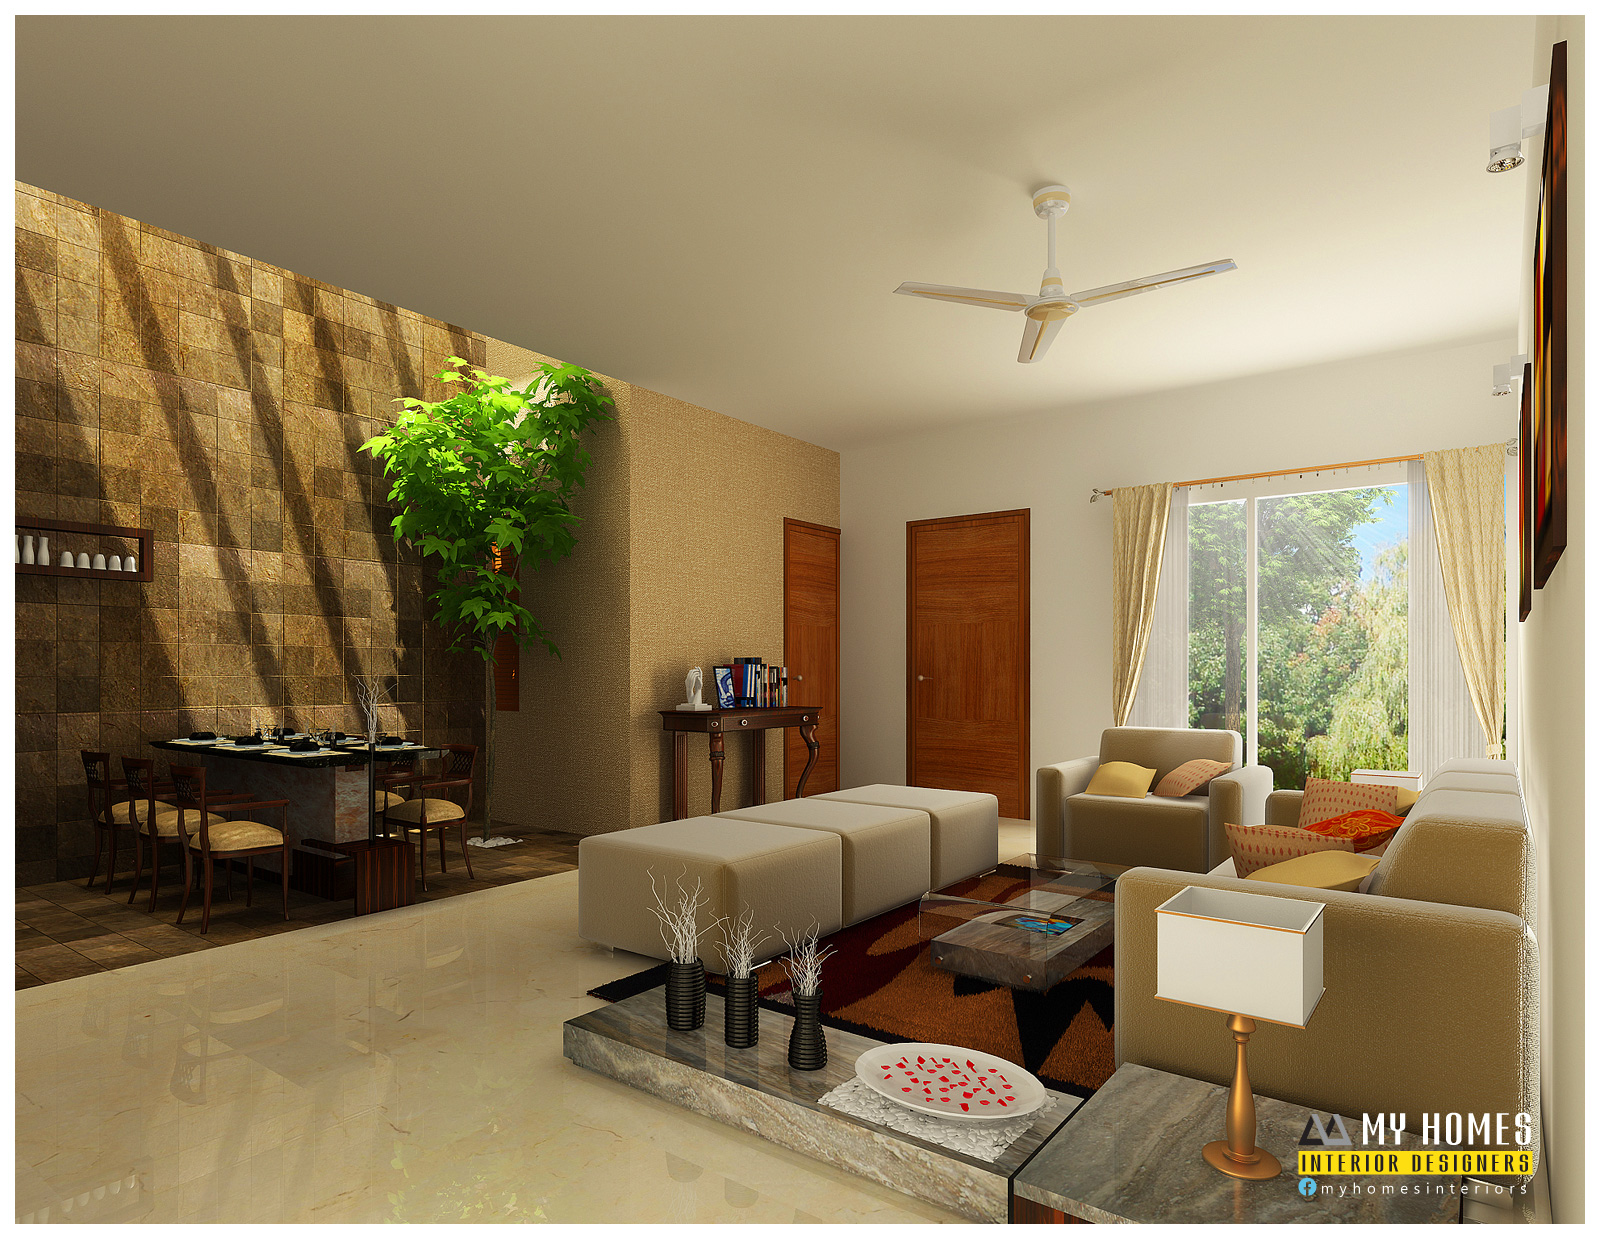 Kerala interior design ideas from designing company thrissur for Kerala home living room designs